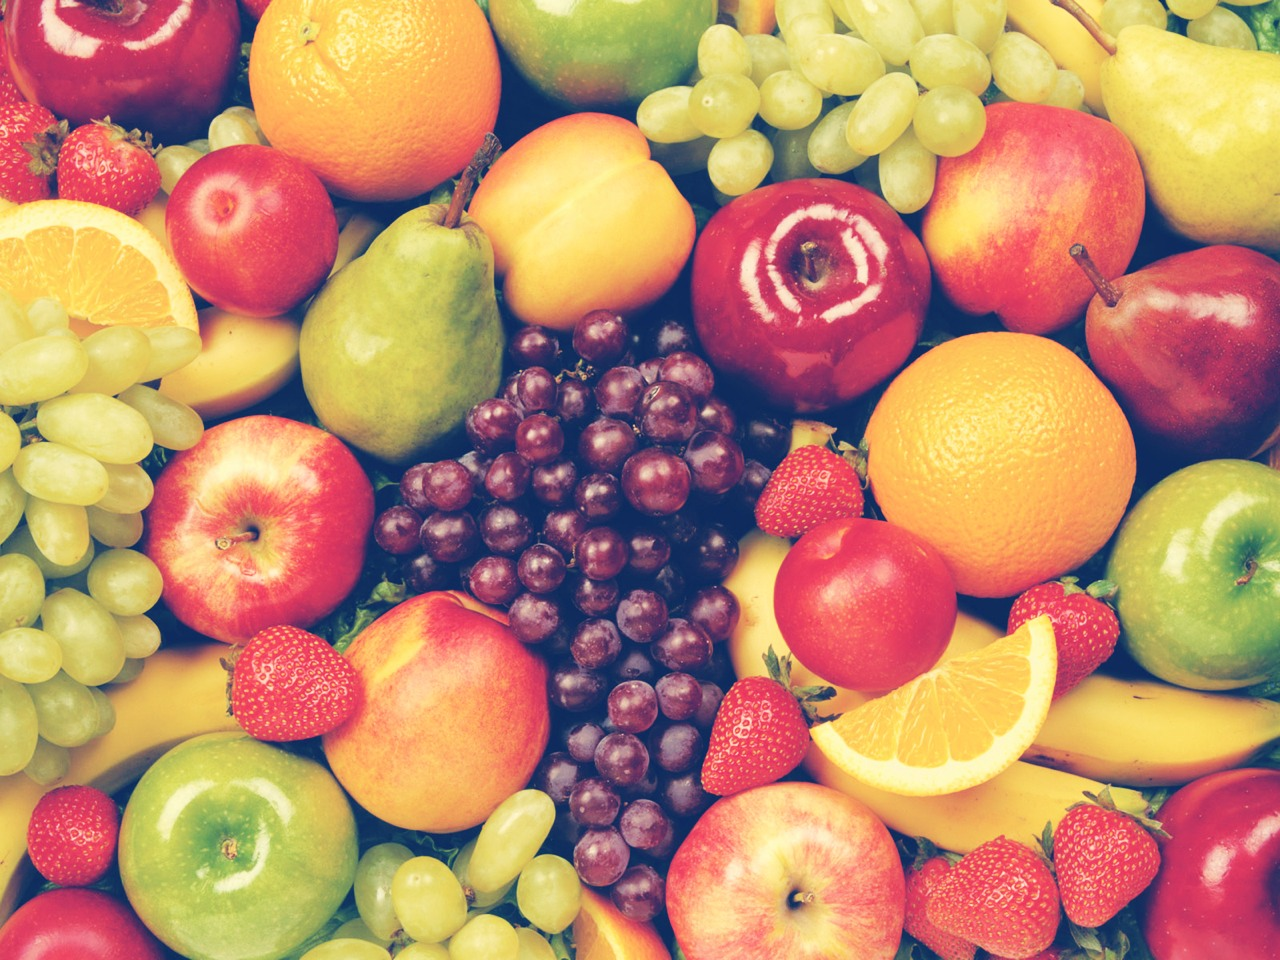 All fruits have vitamins that can help detox your body and help with asthma, colds, sinuses, and any other sickness.